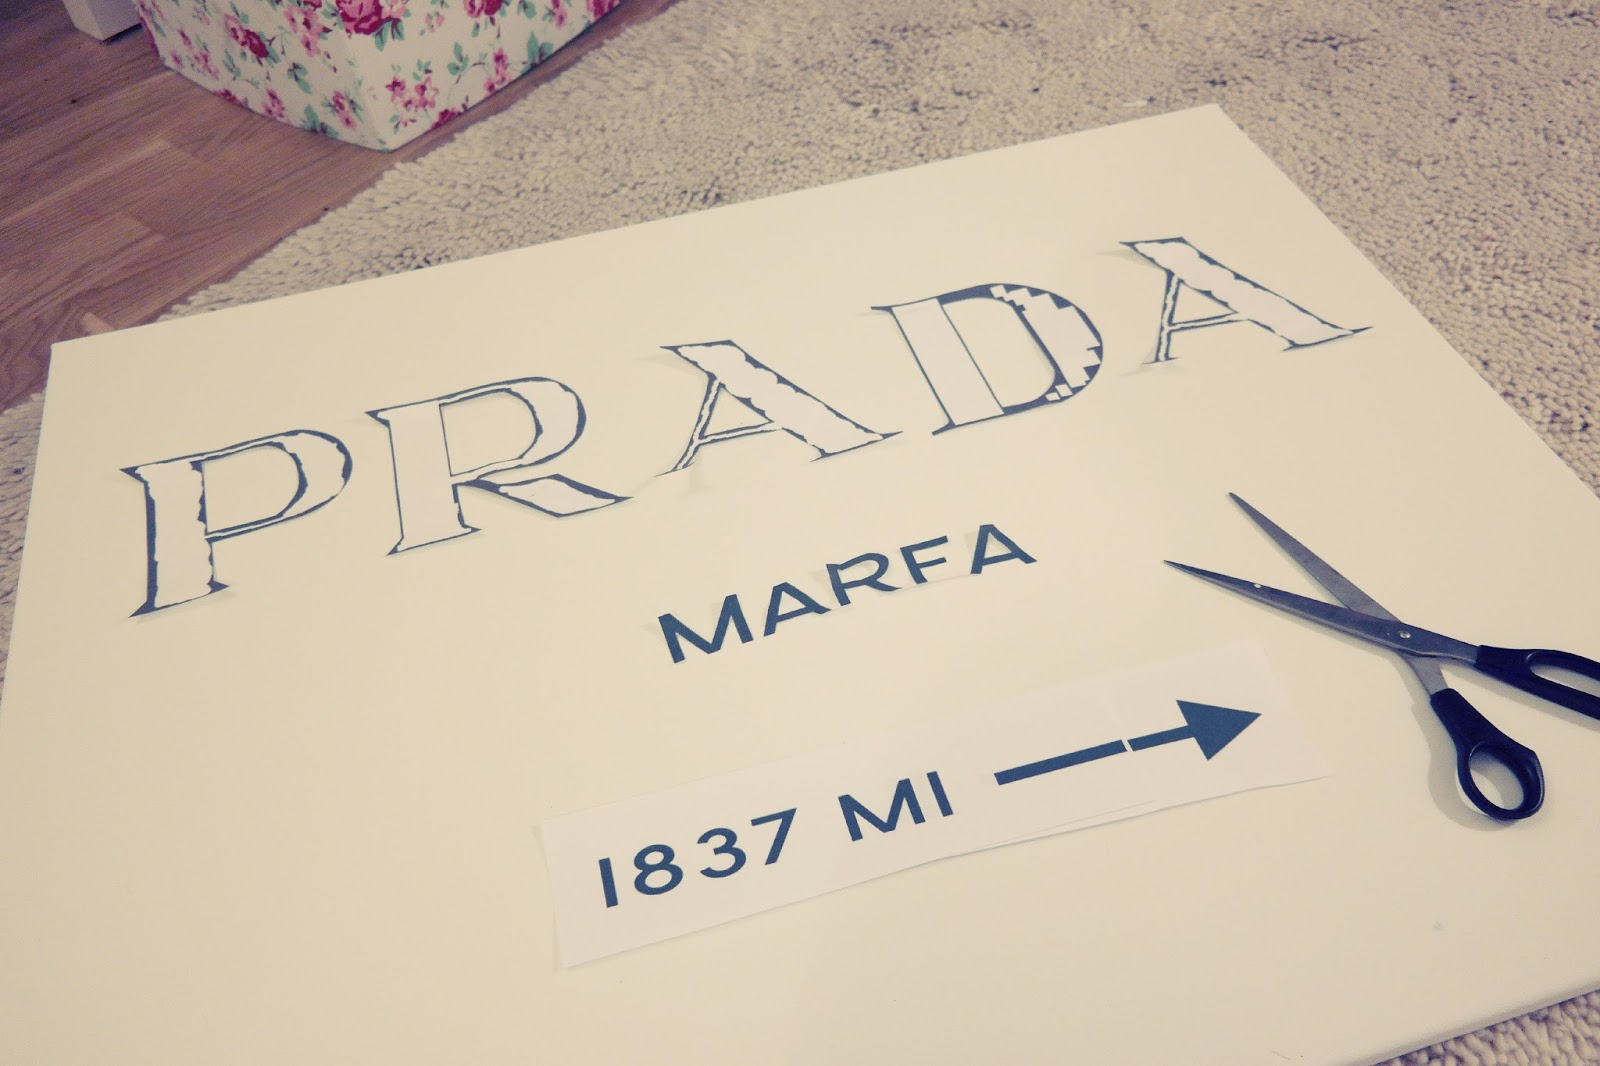 diy prada marfa bild by gossip girl selber machen tutorial neuer blog. Black Bedroom Furniture Sets. Home Design Ideas